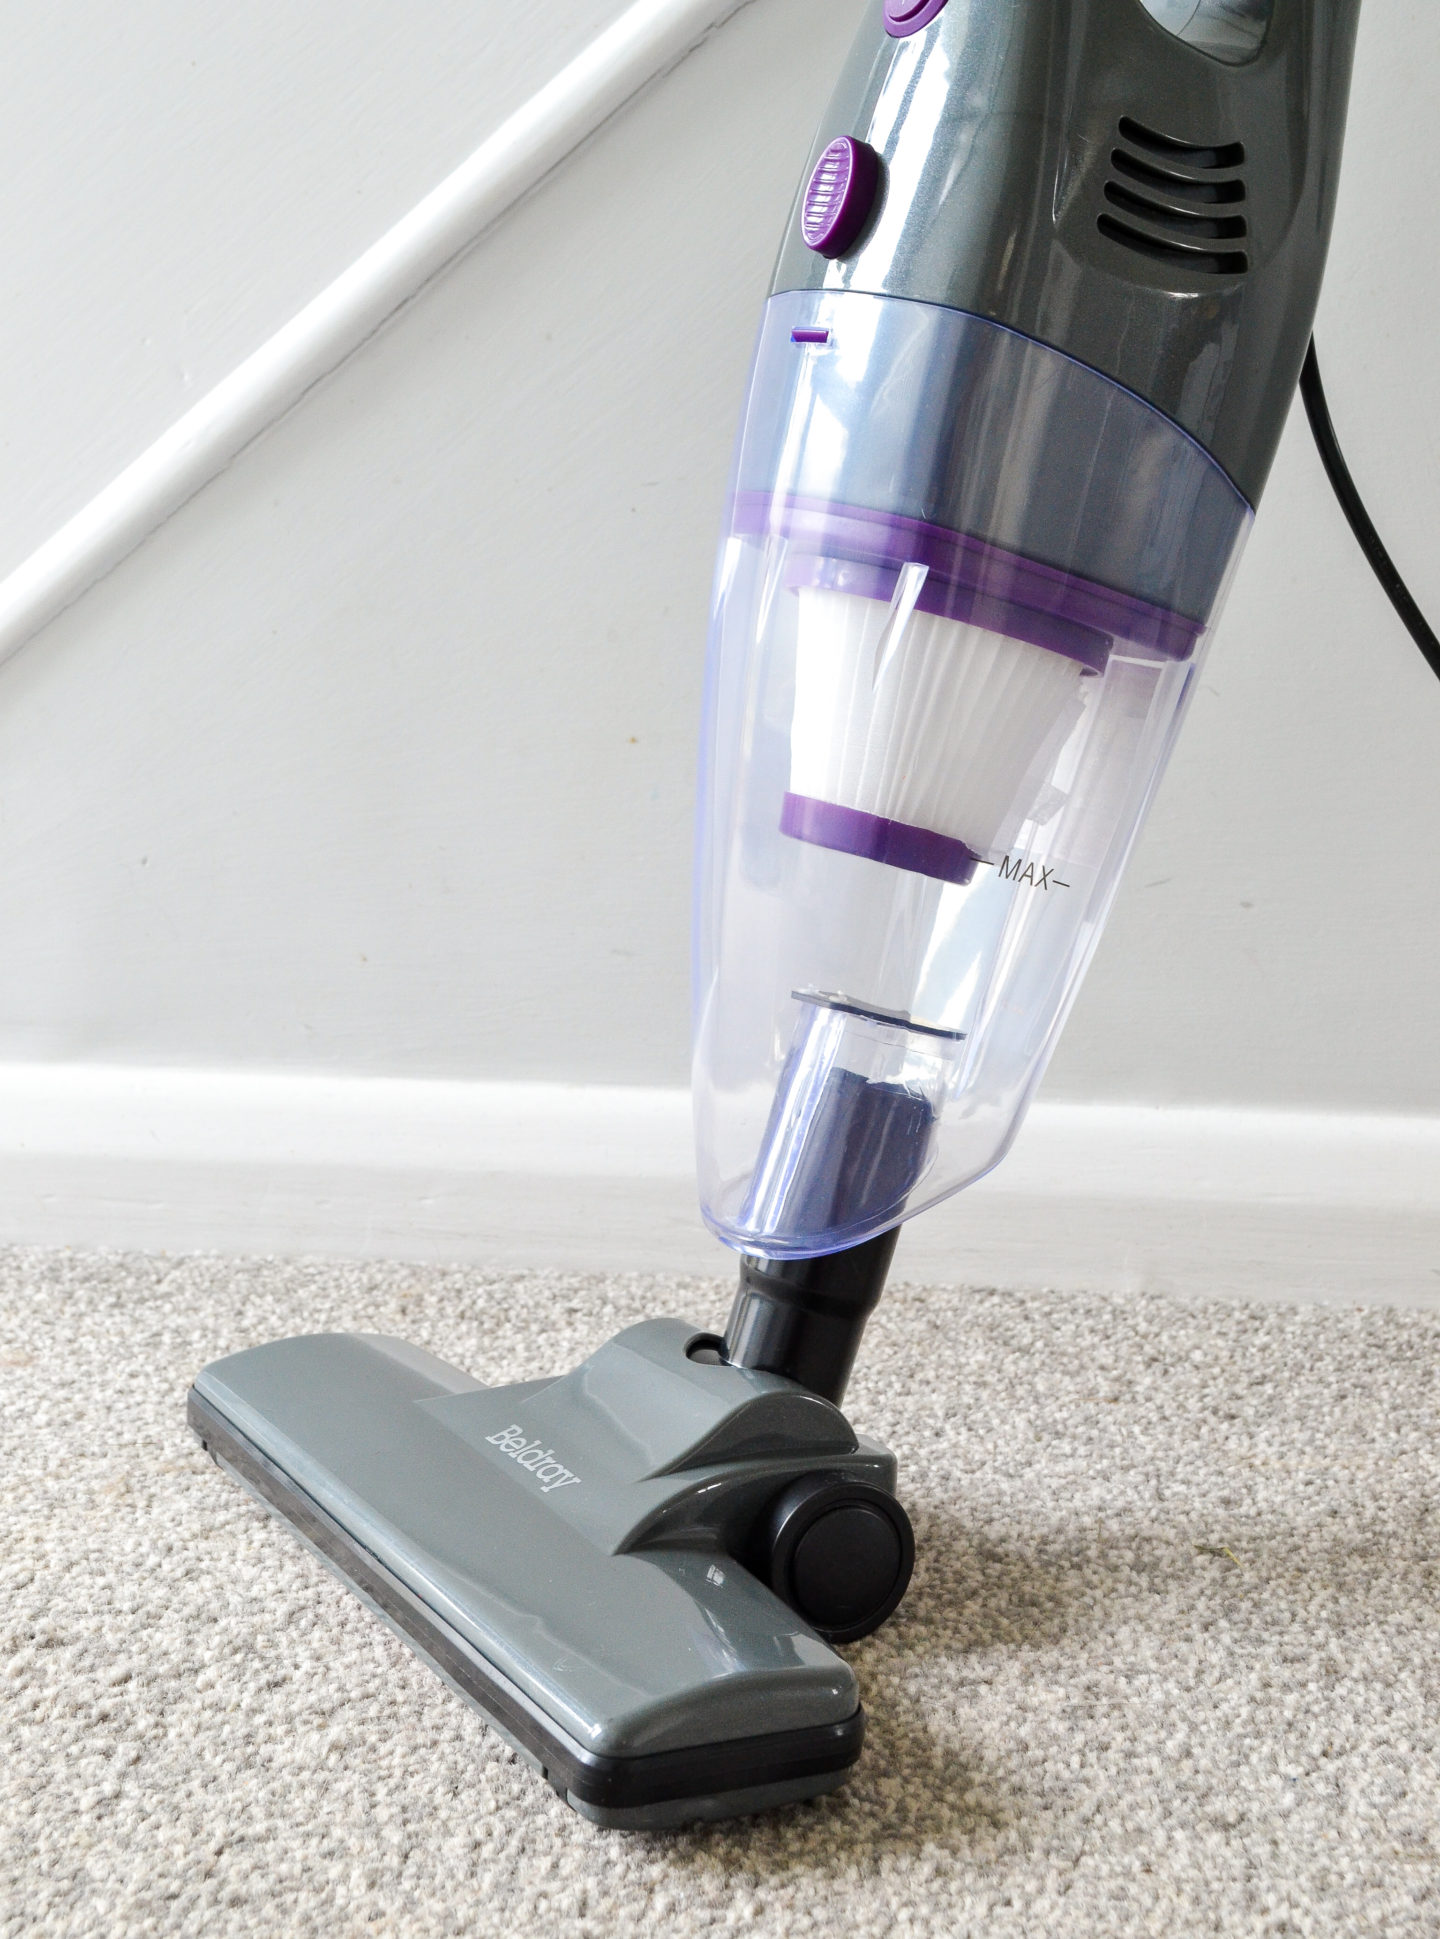 Beldray 2 in 1 stick vacuum cleaner review